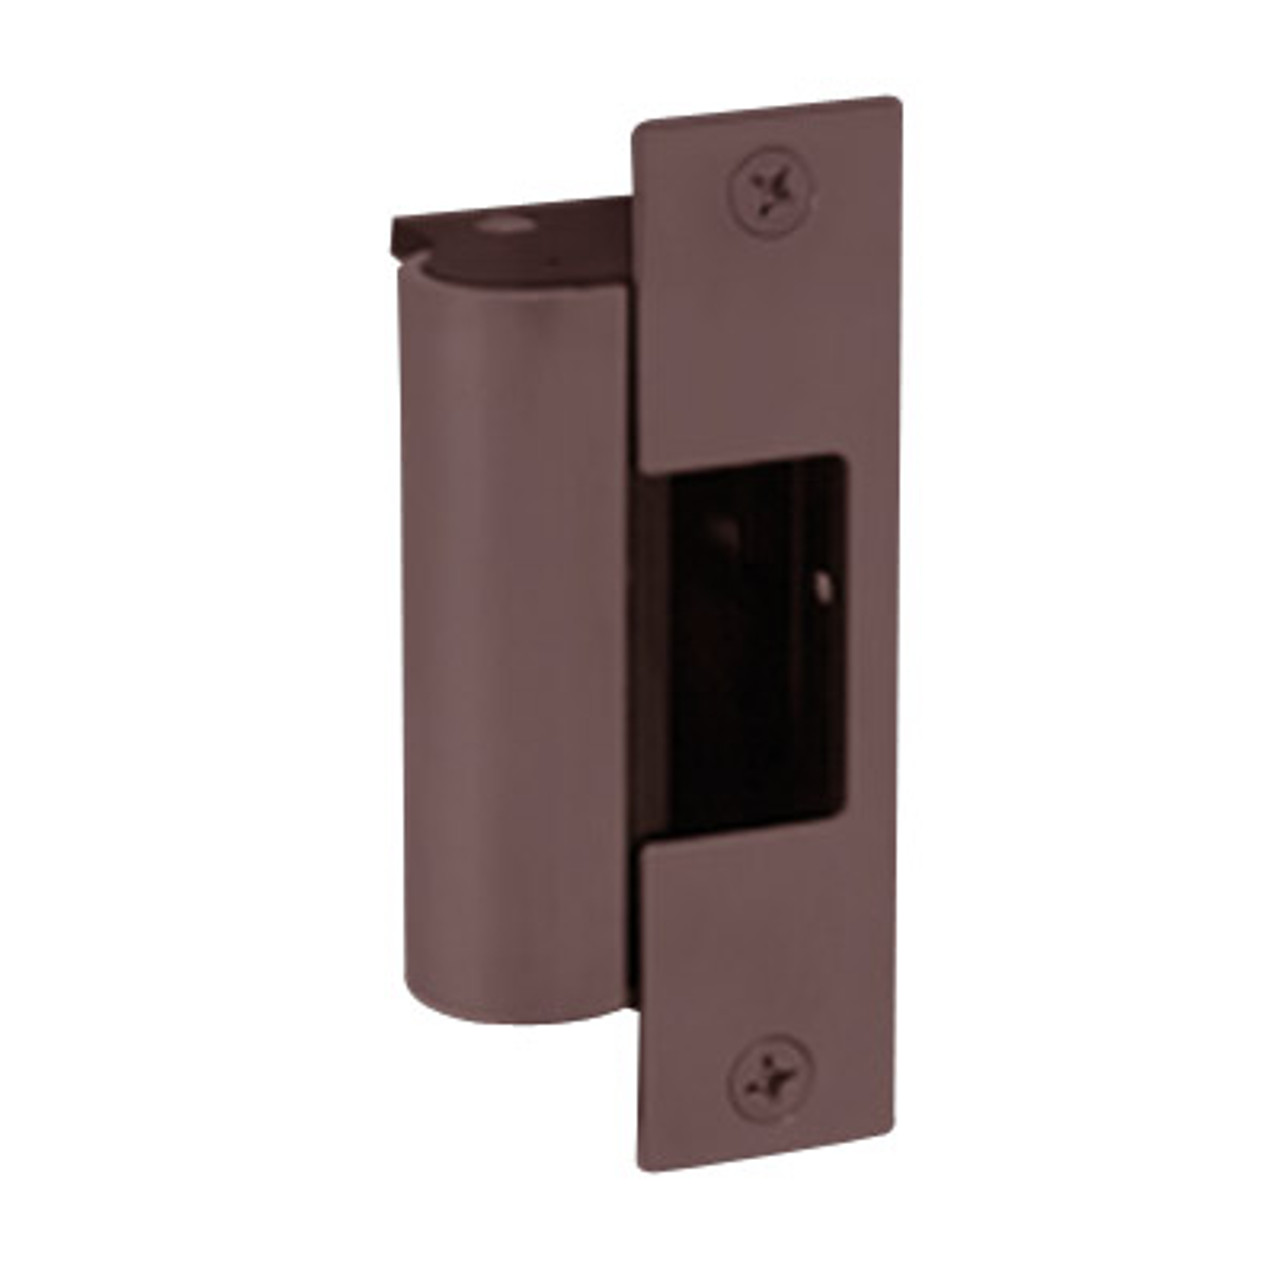 1006-F-613-LBM Hes Fail Safe Electric Strike Body with Latchbolt Monitor in Bronze Toned Finish